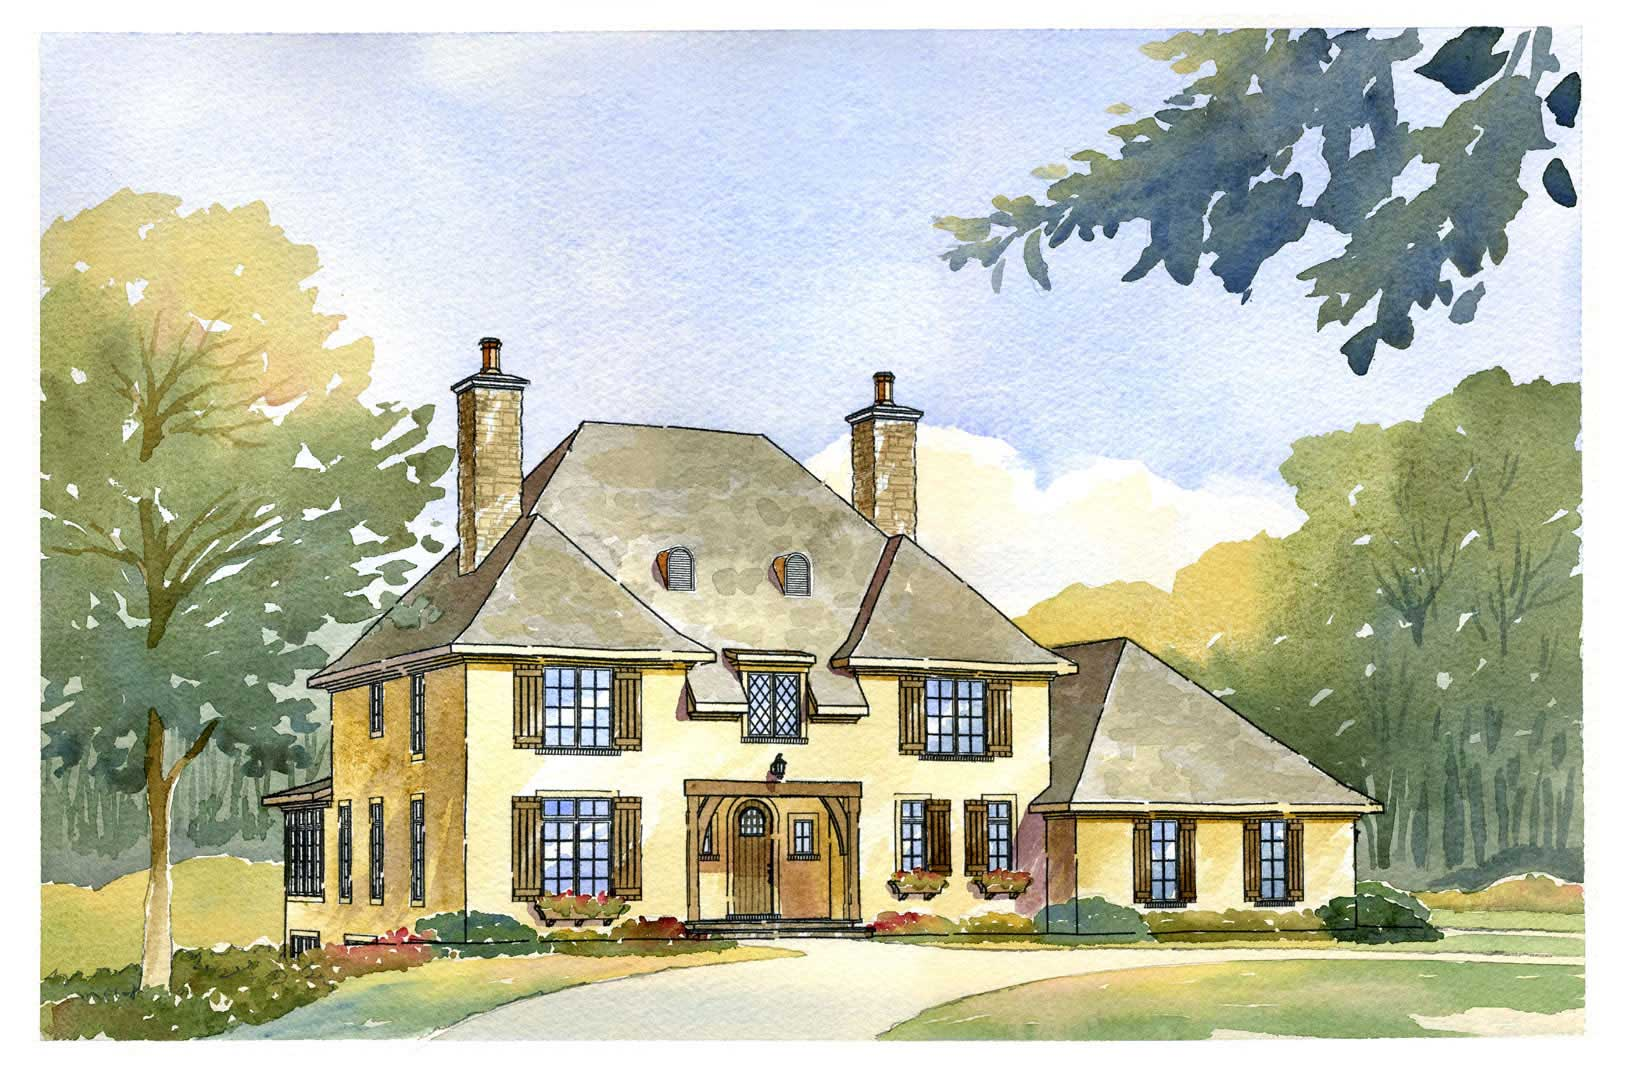 Amazing #168 1077 · This Image Shows The Front Elevation Of These French Country  Homeplans.